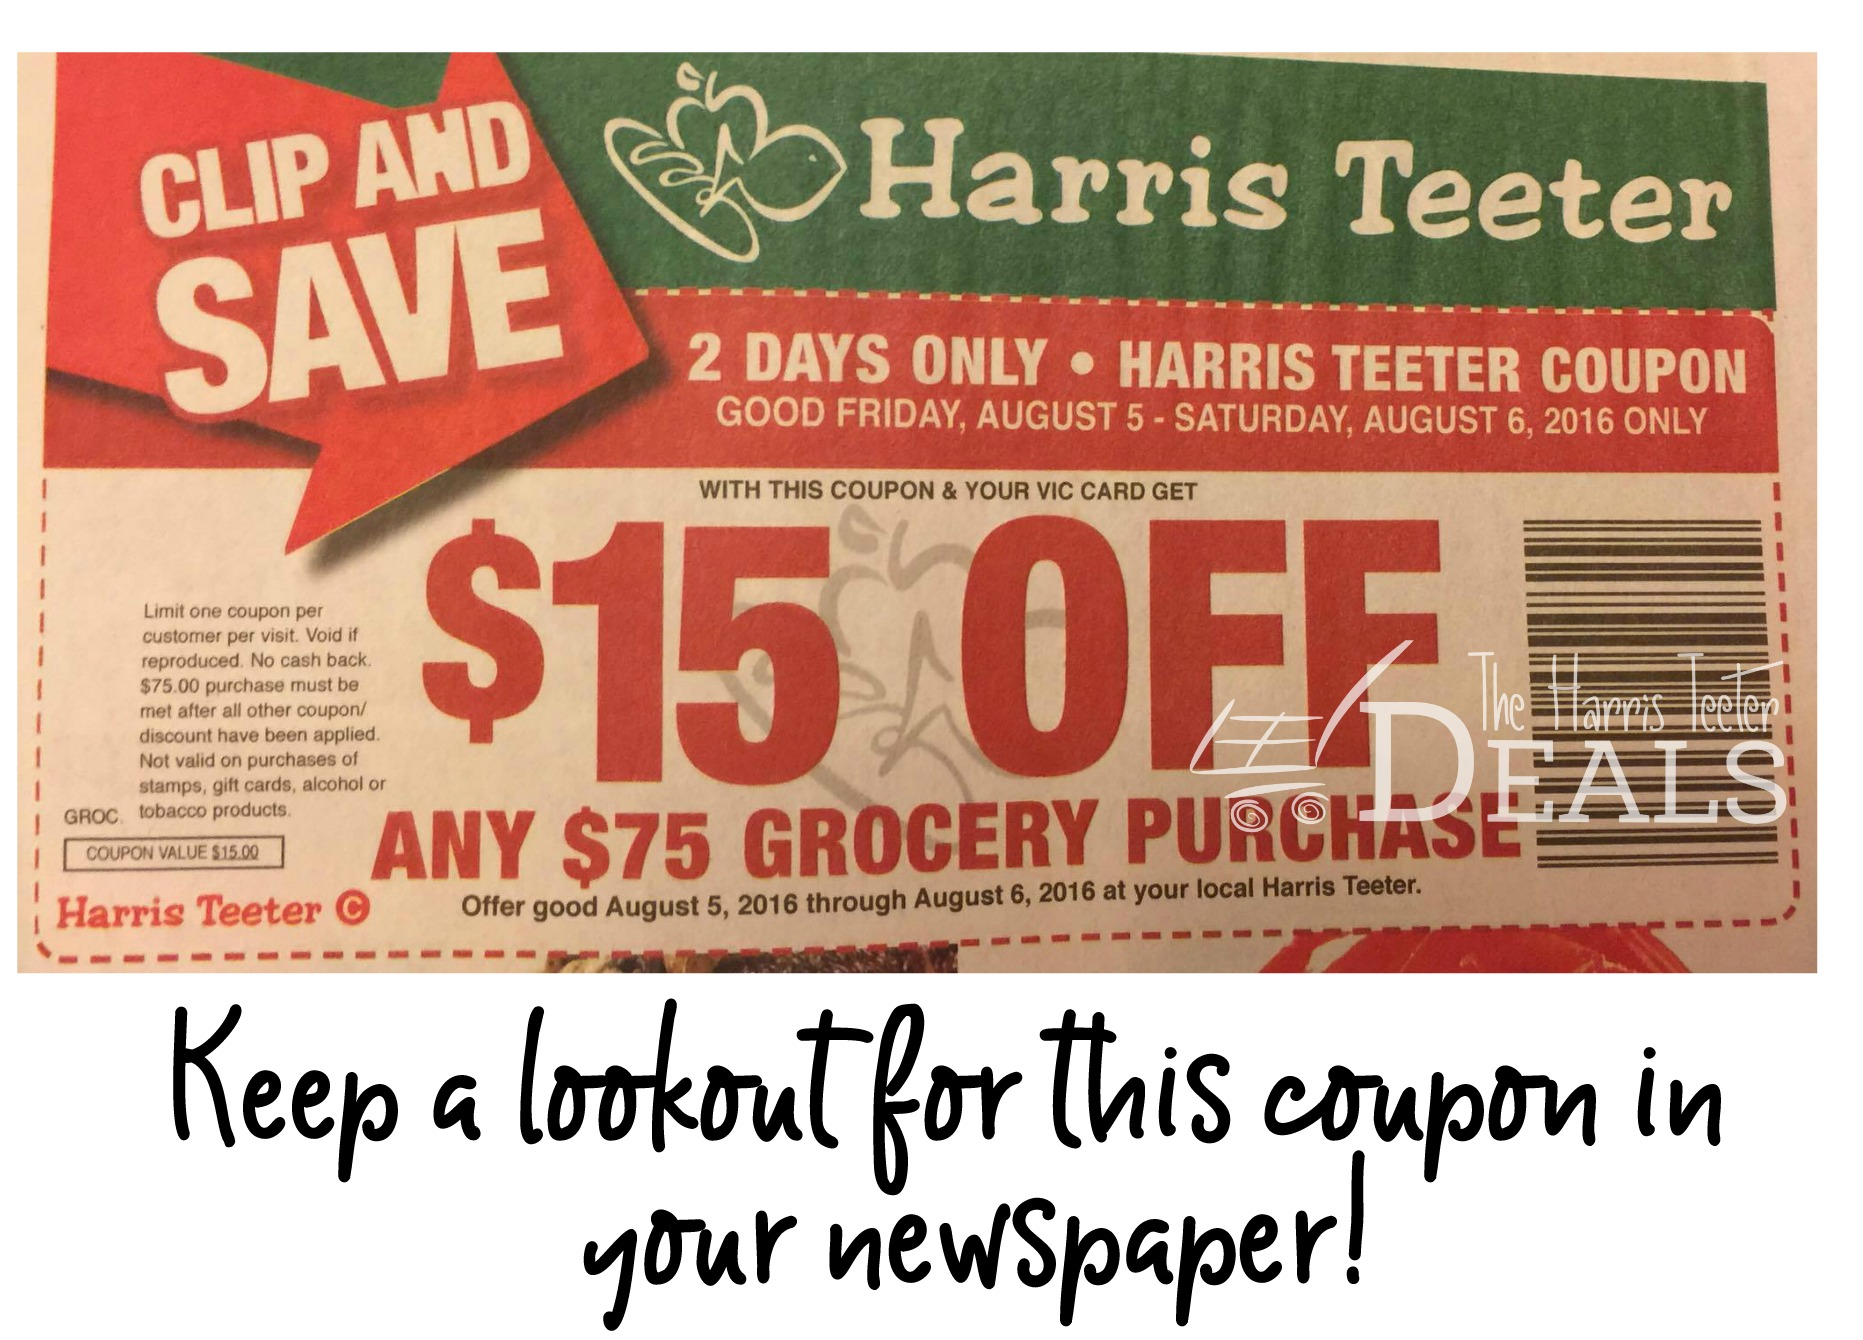 Harris teeter coupons